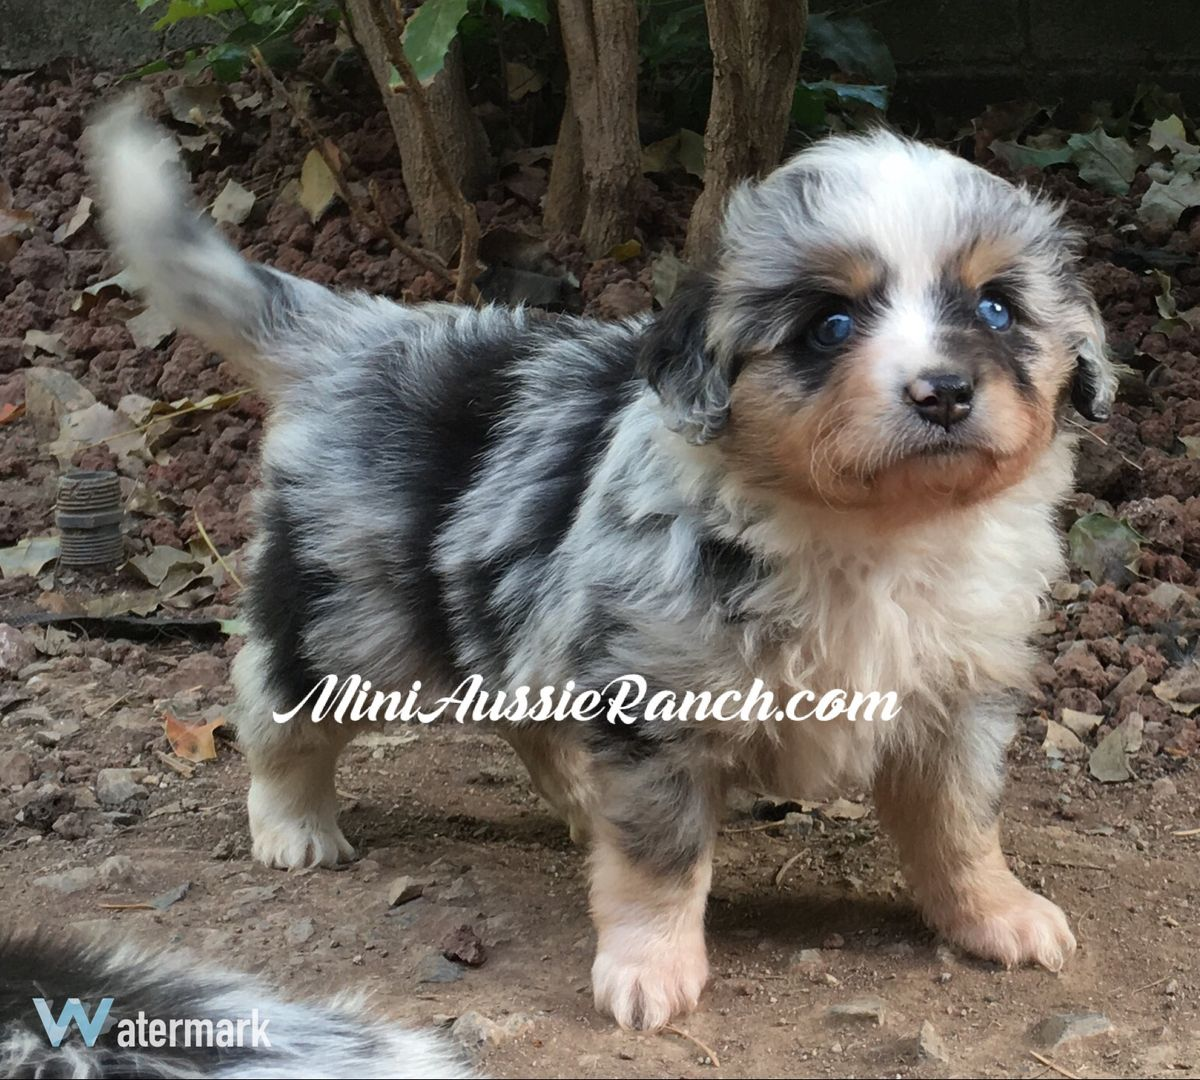 Miniature Australian Shepherd Puppies For Sale In California